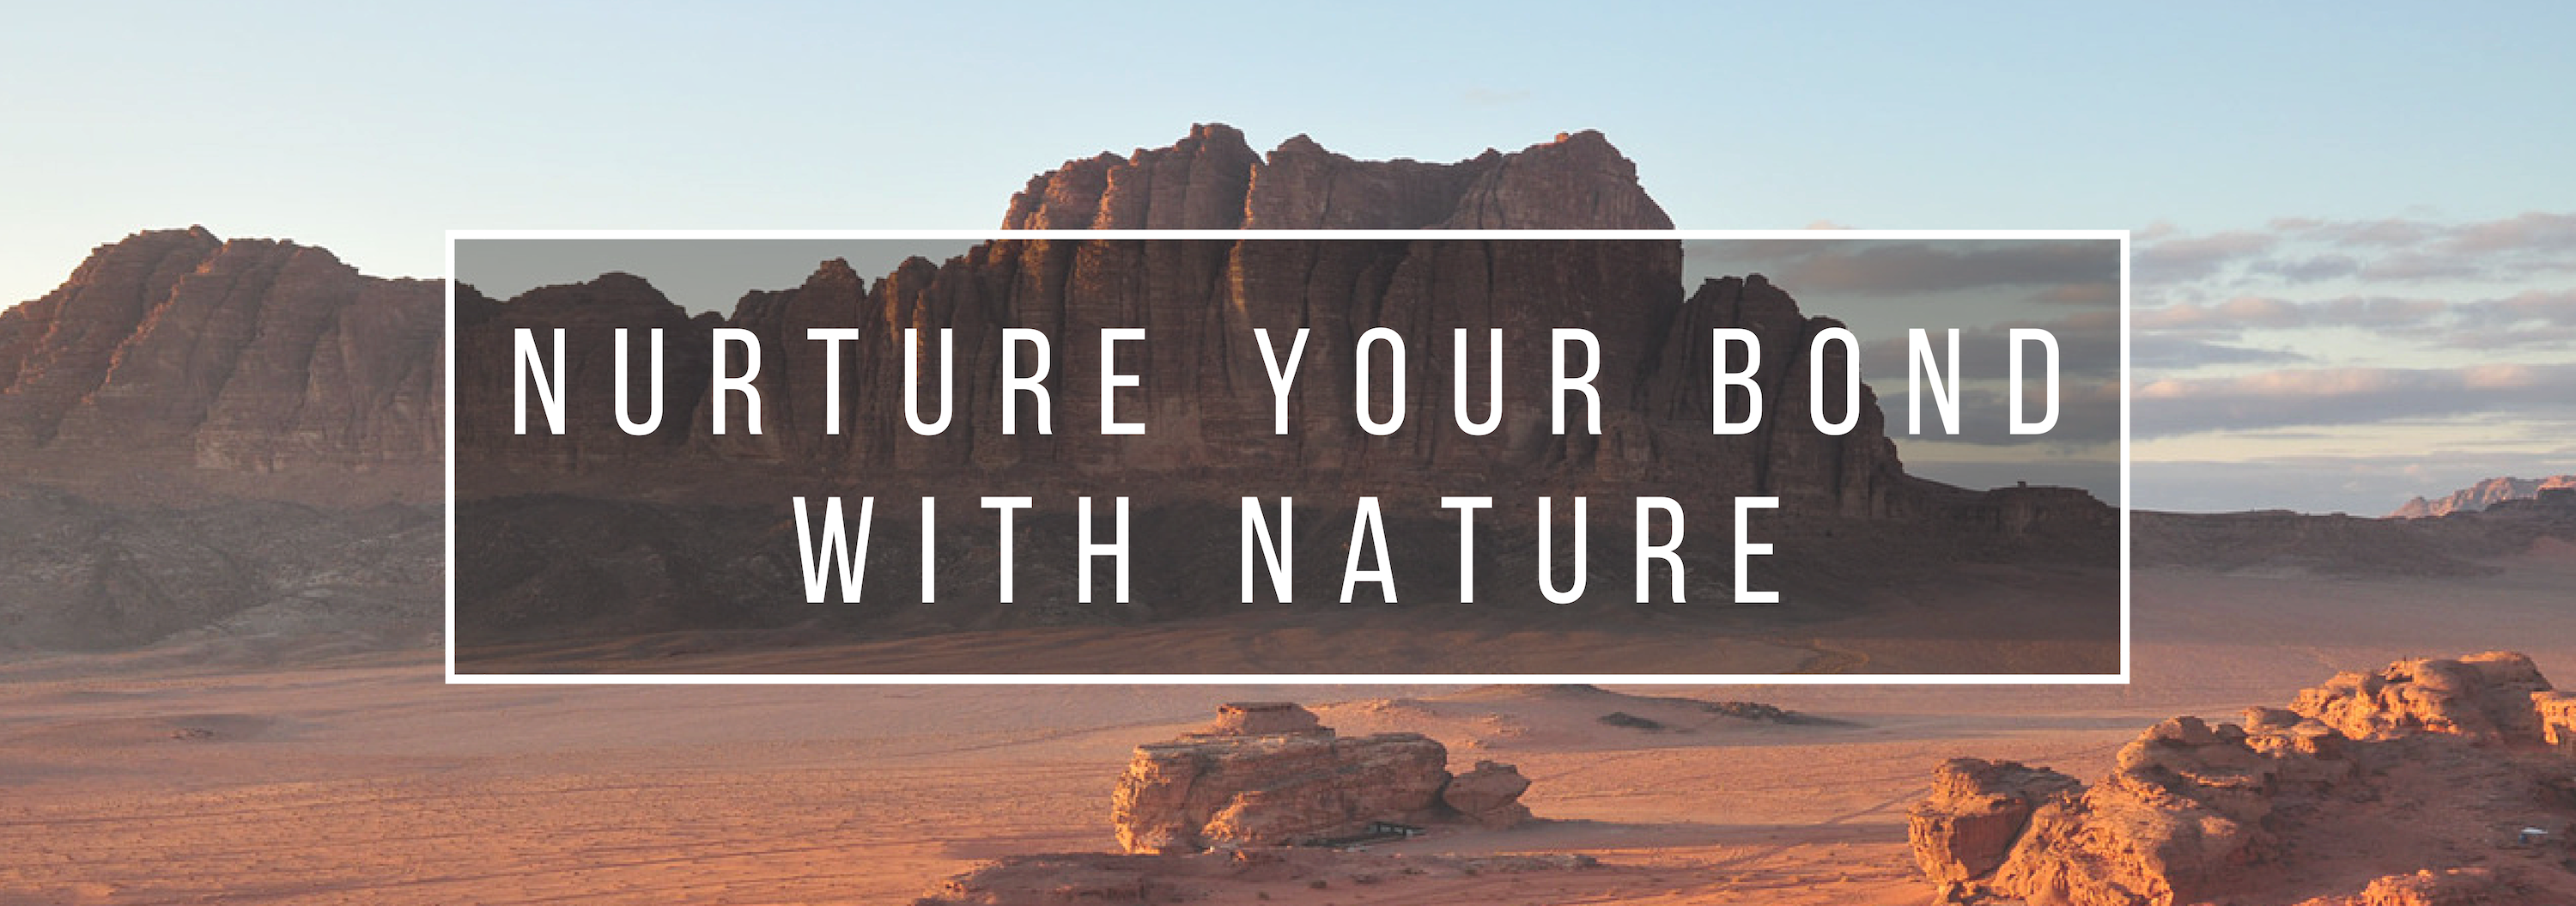 Nurture your bond with nature